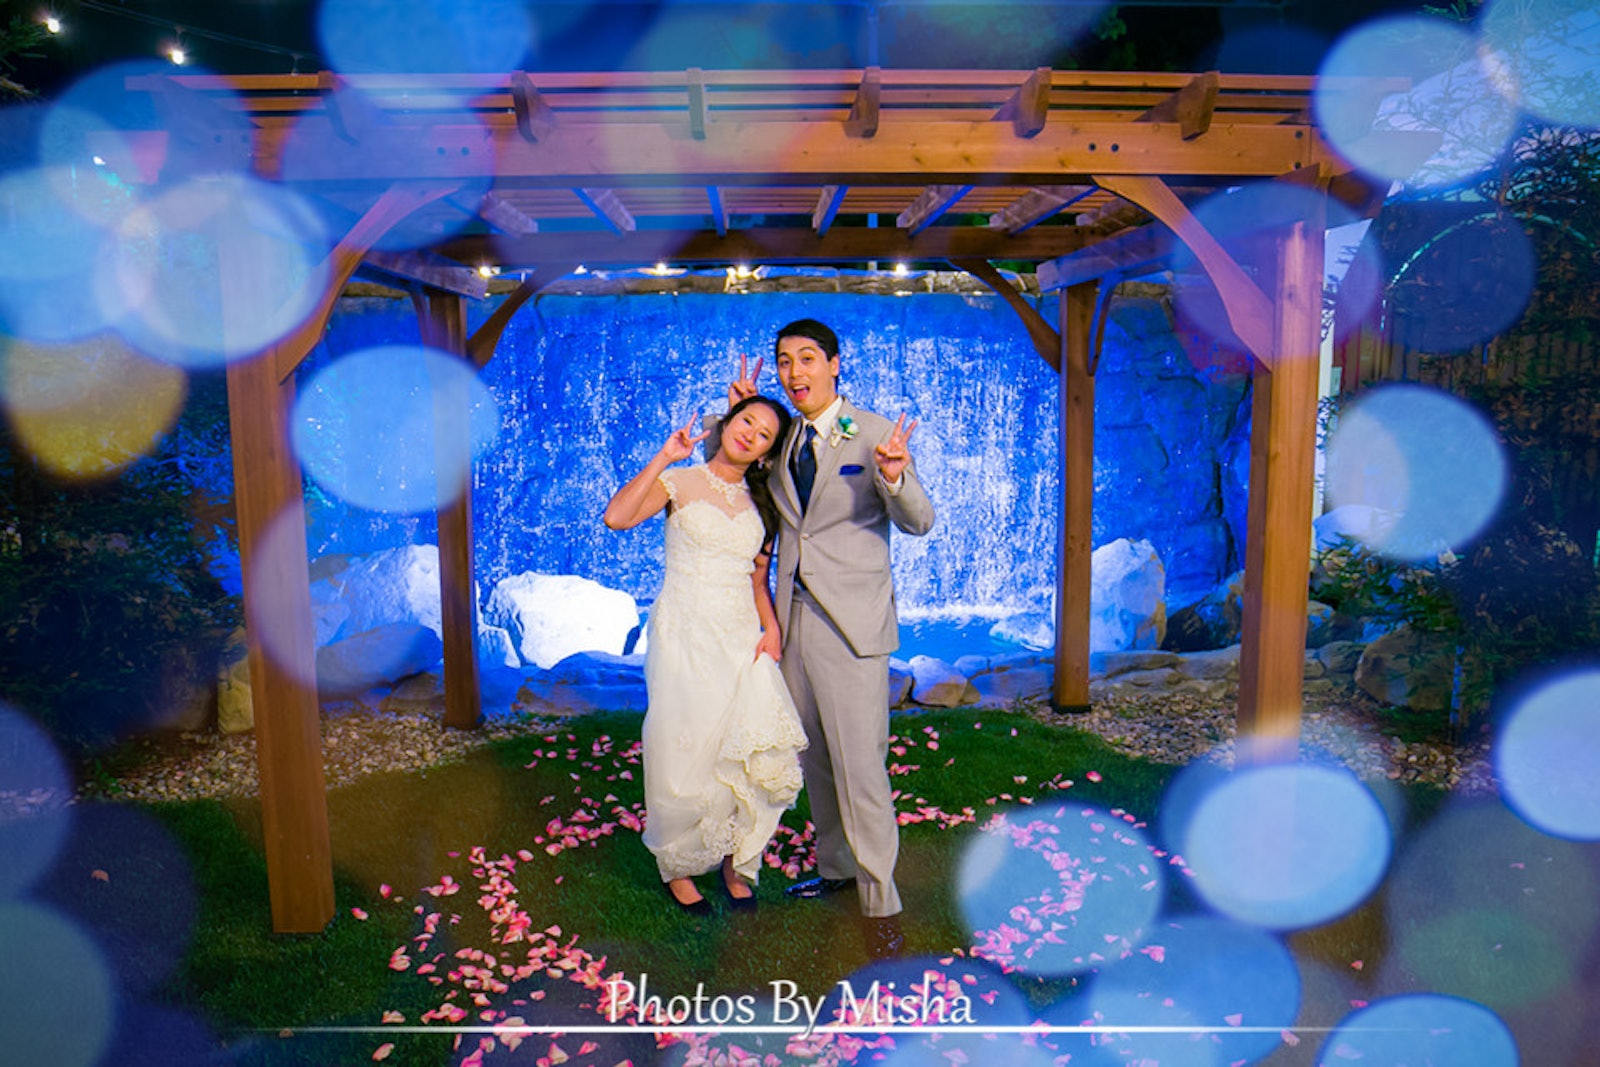 PBM-DMHsueh-Wedding-693